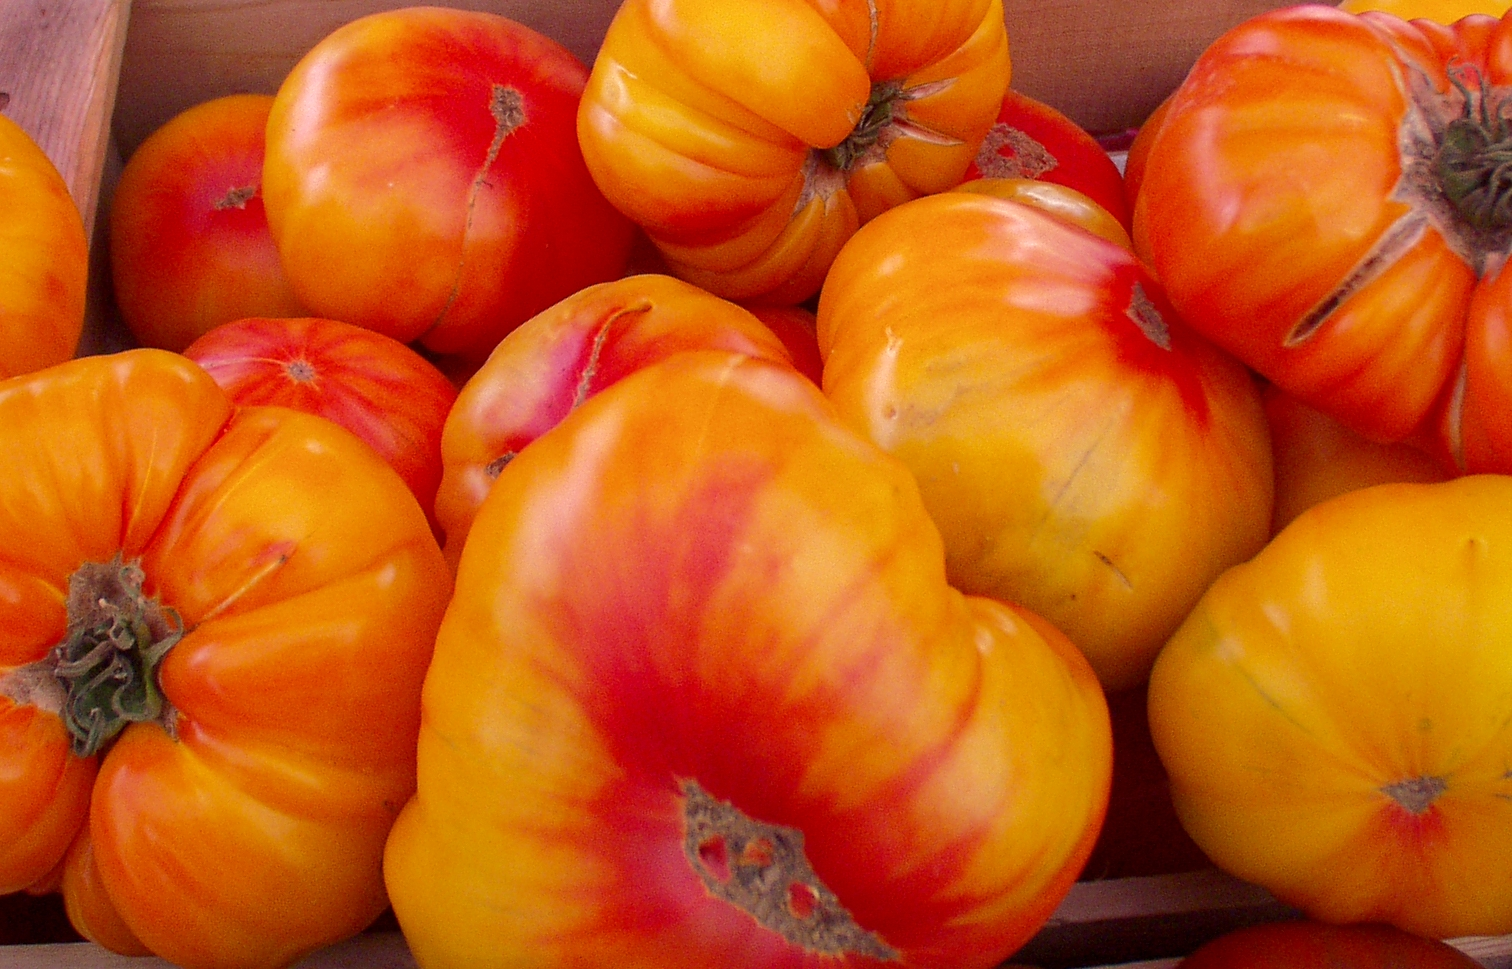 Striped German tomatoes from Billy's Organic Produce. Photo copyright 2009 by Zachary D. Lyons.